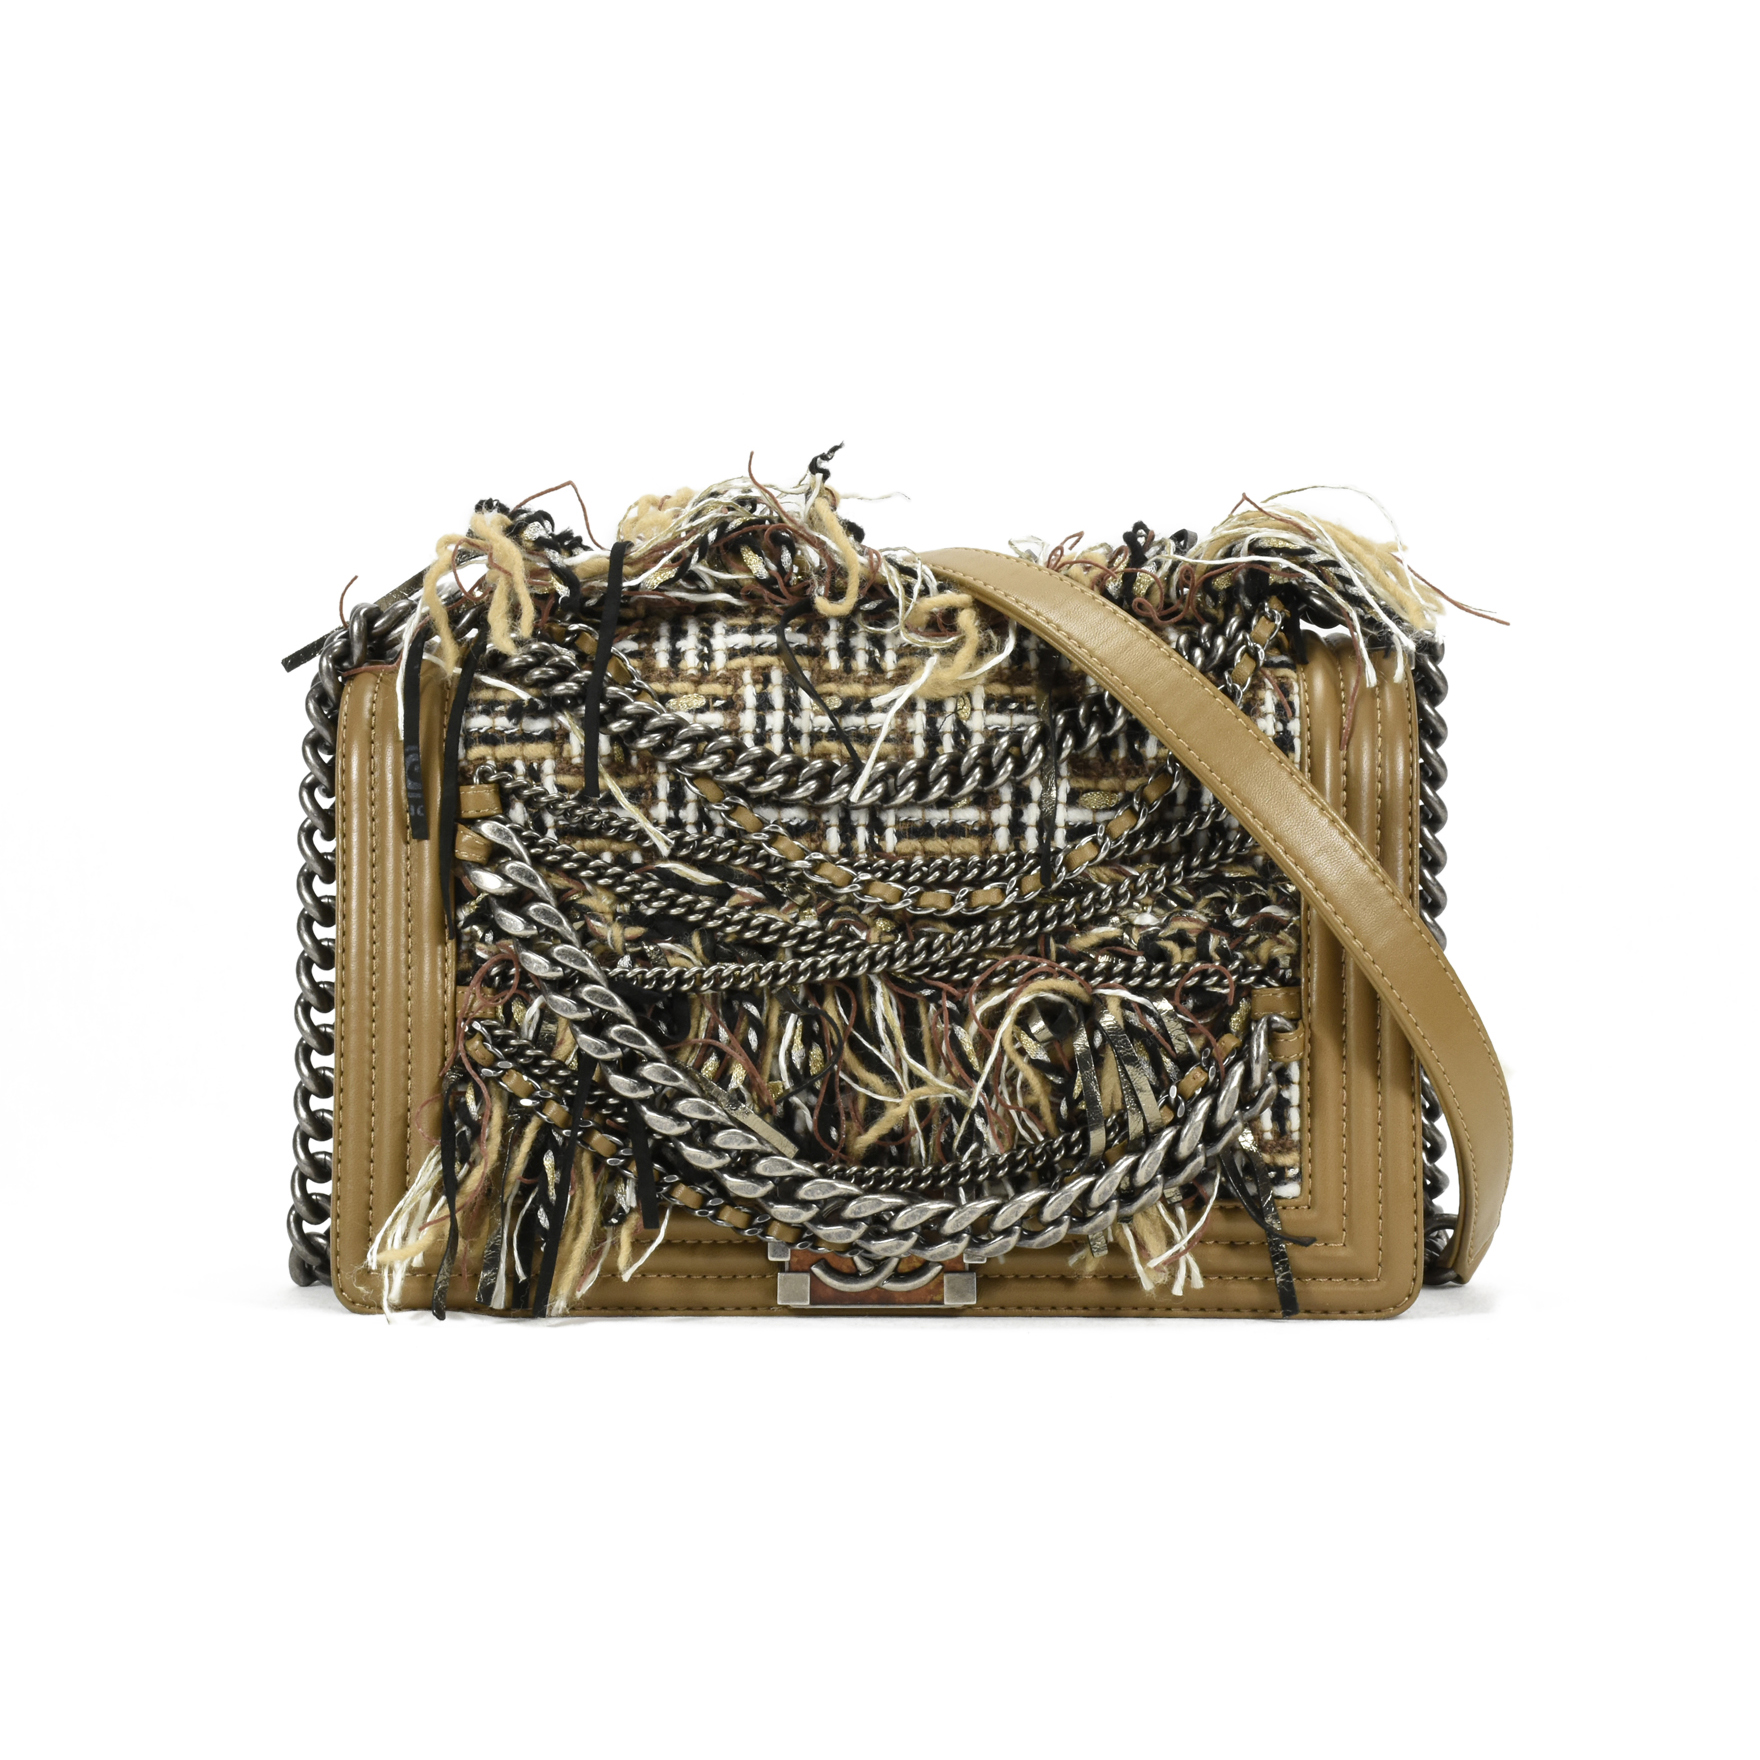 9e616efe773c93 Authentic Second Hand Chanel Paris Dallas Enchained Fringe Boy Bag  (PSS-200-00986) | THE FIFTH COLLECTION